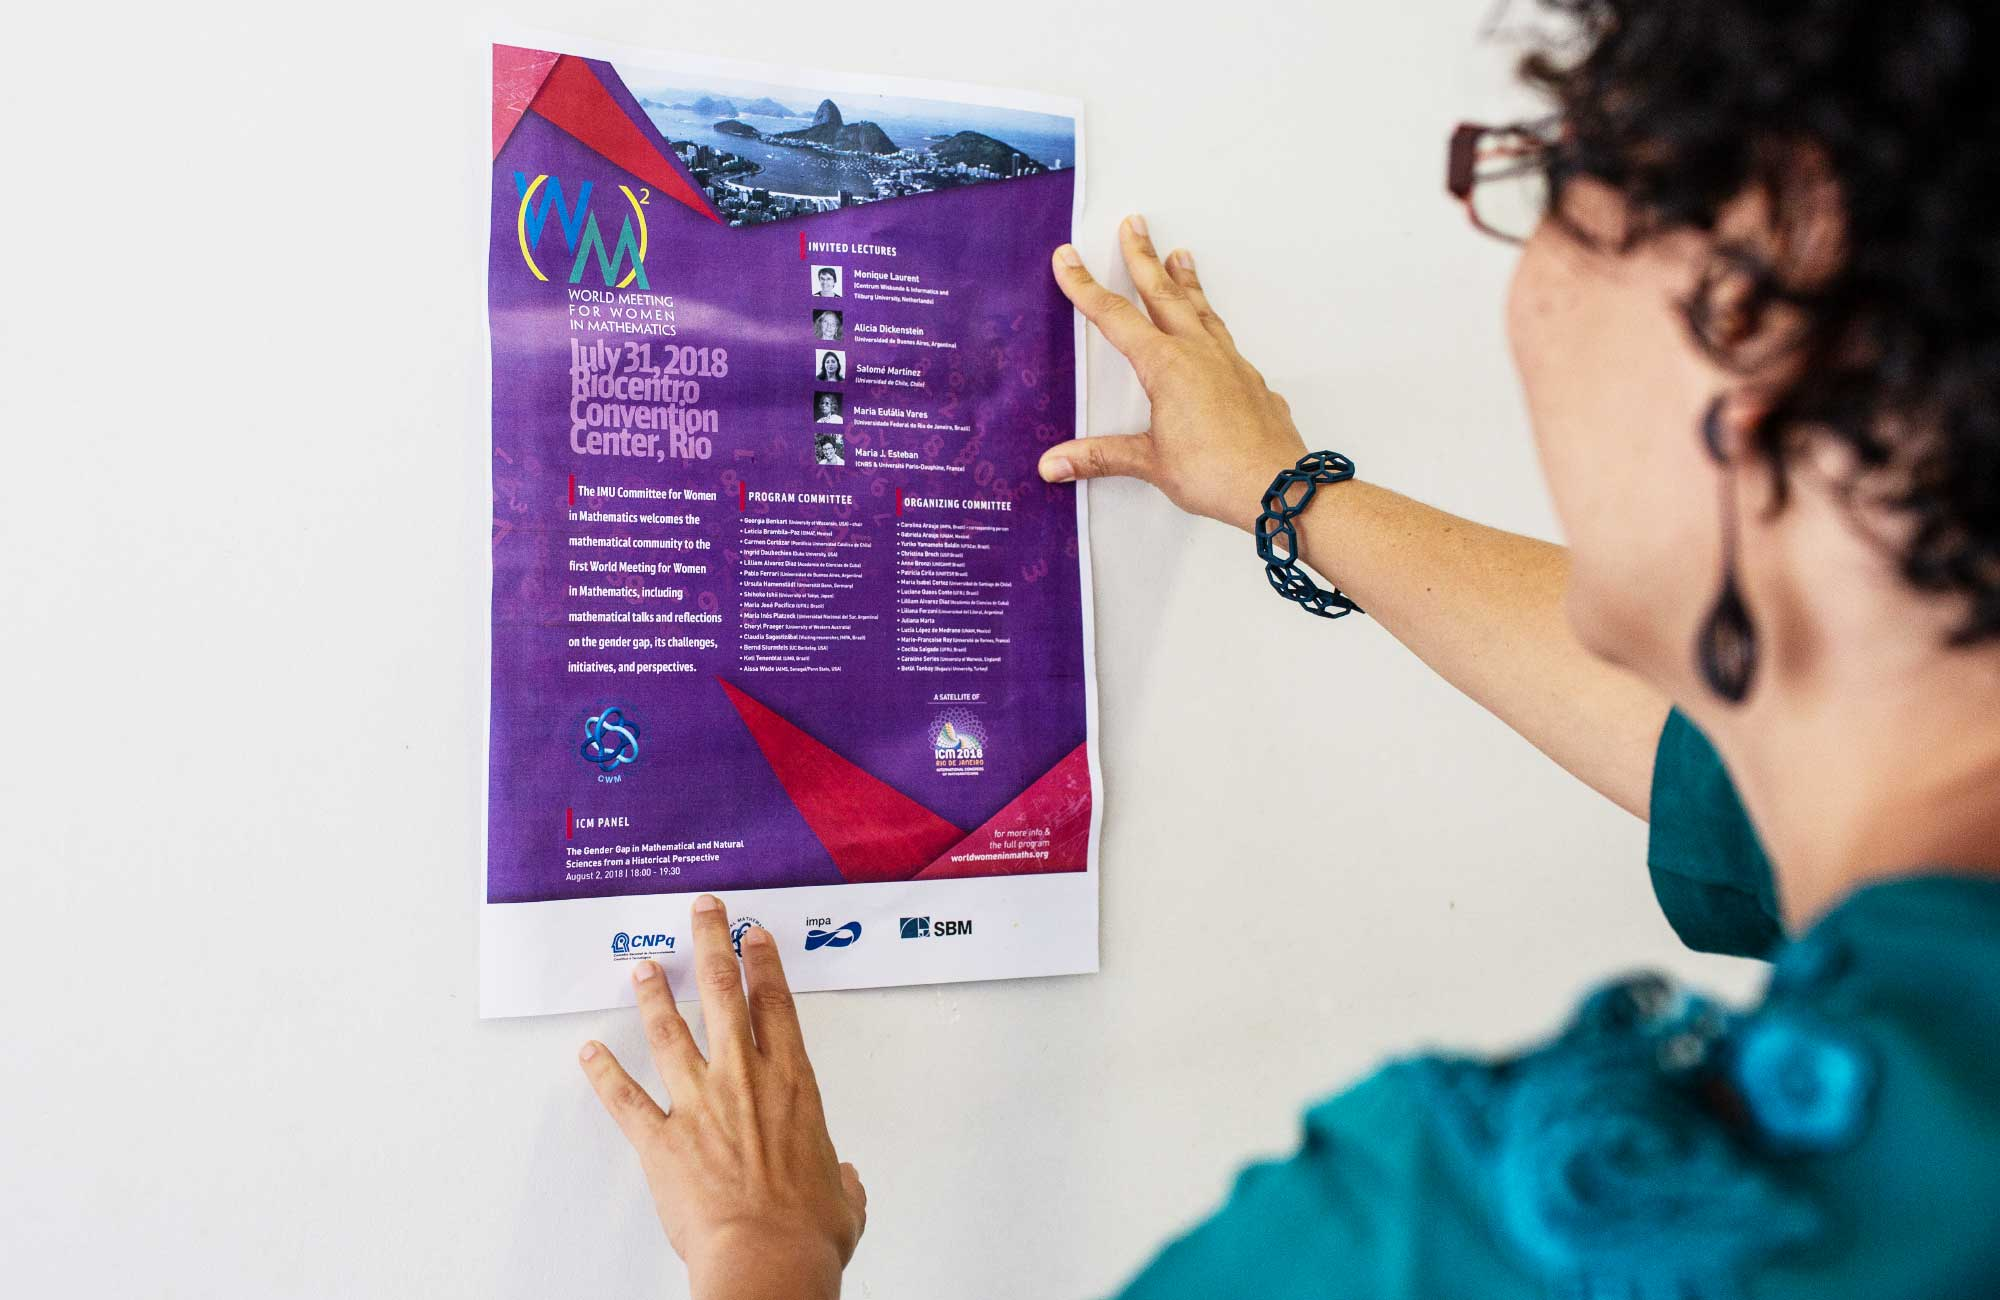 Carolina Araujo holding a poster for the World Meeting for Women in Mathematics